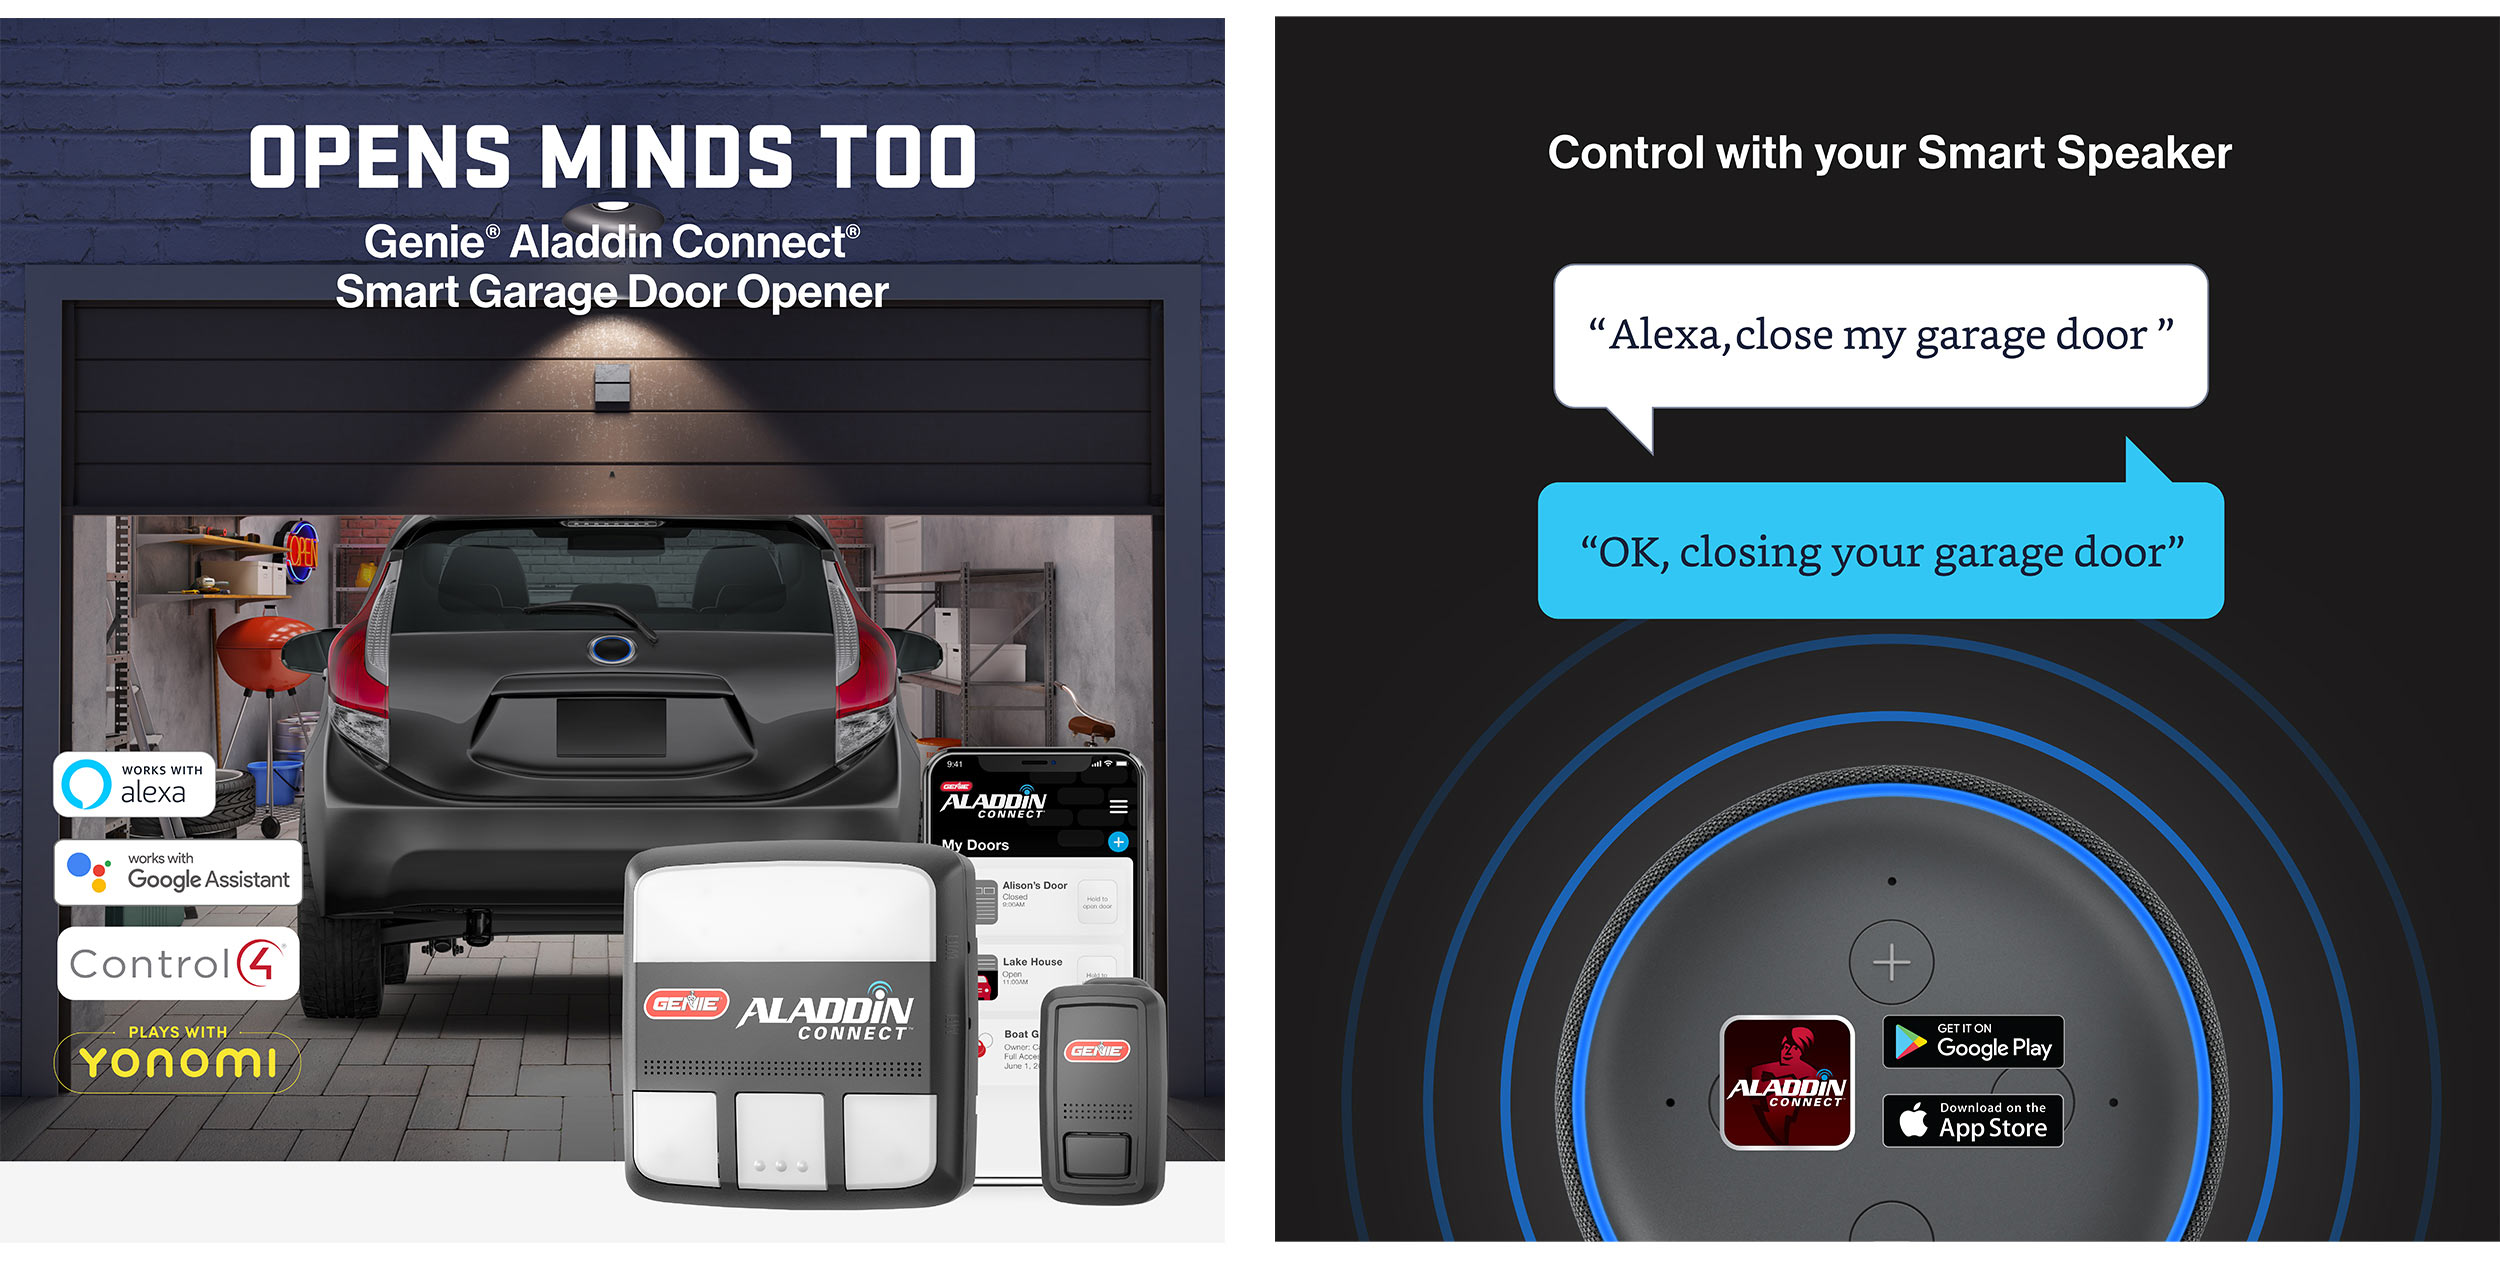 Aladdin Connect WiFi Garage Door Controller by Genie